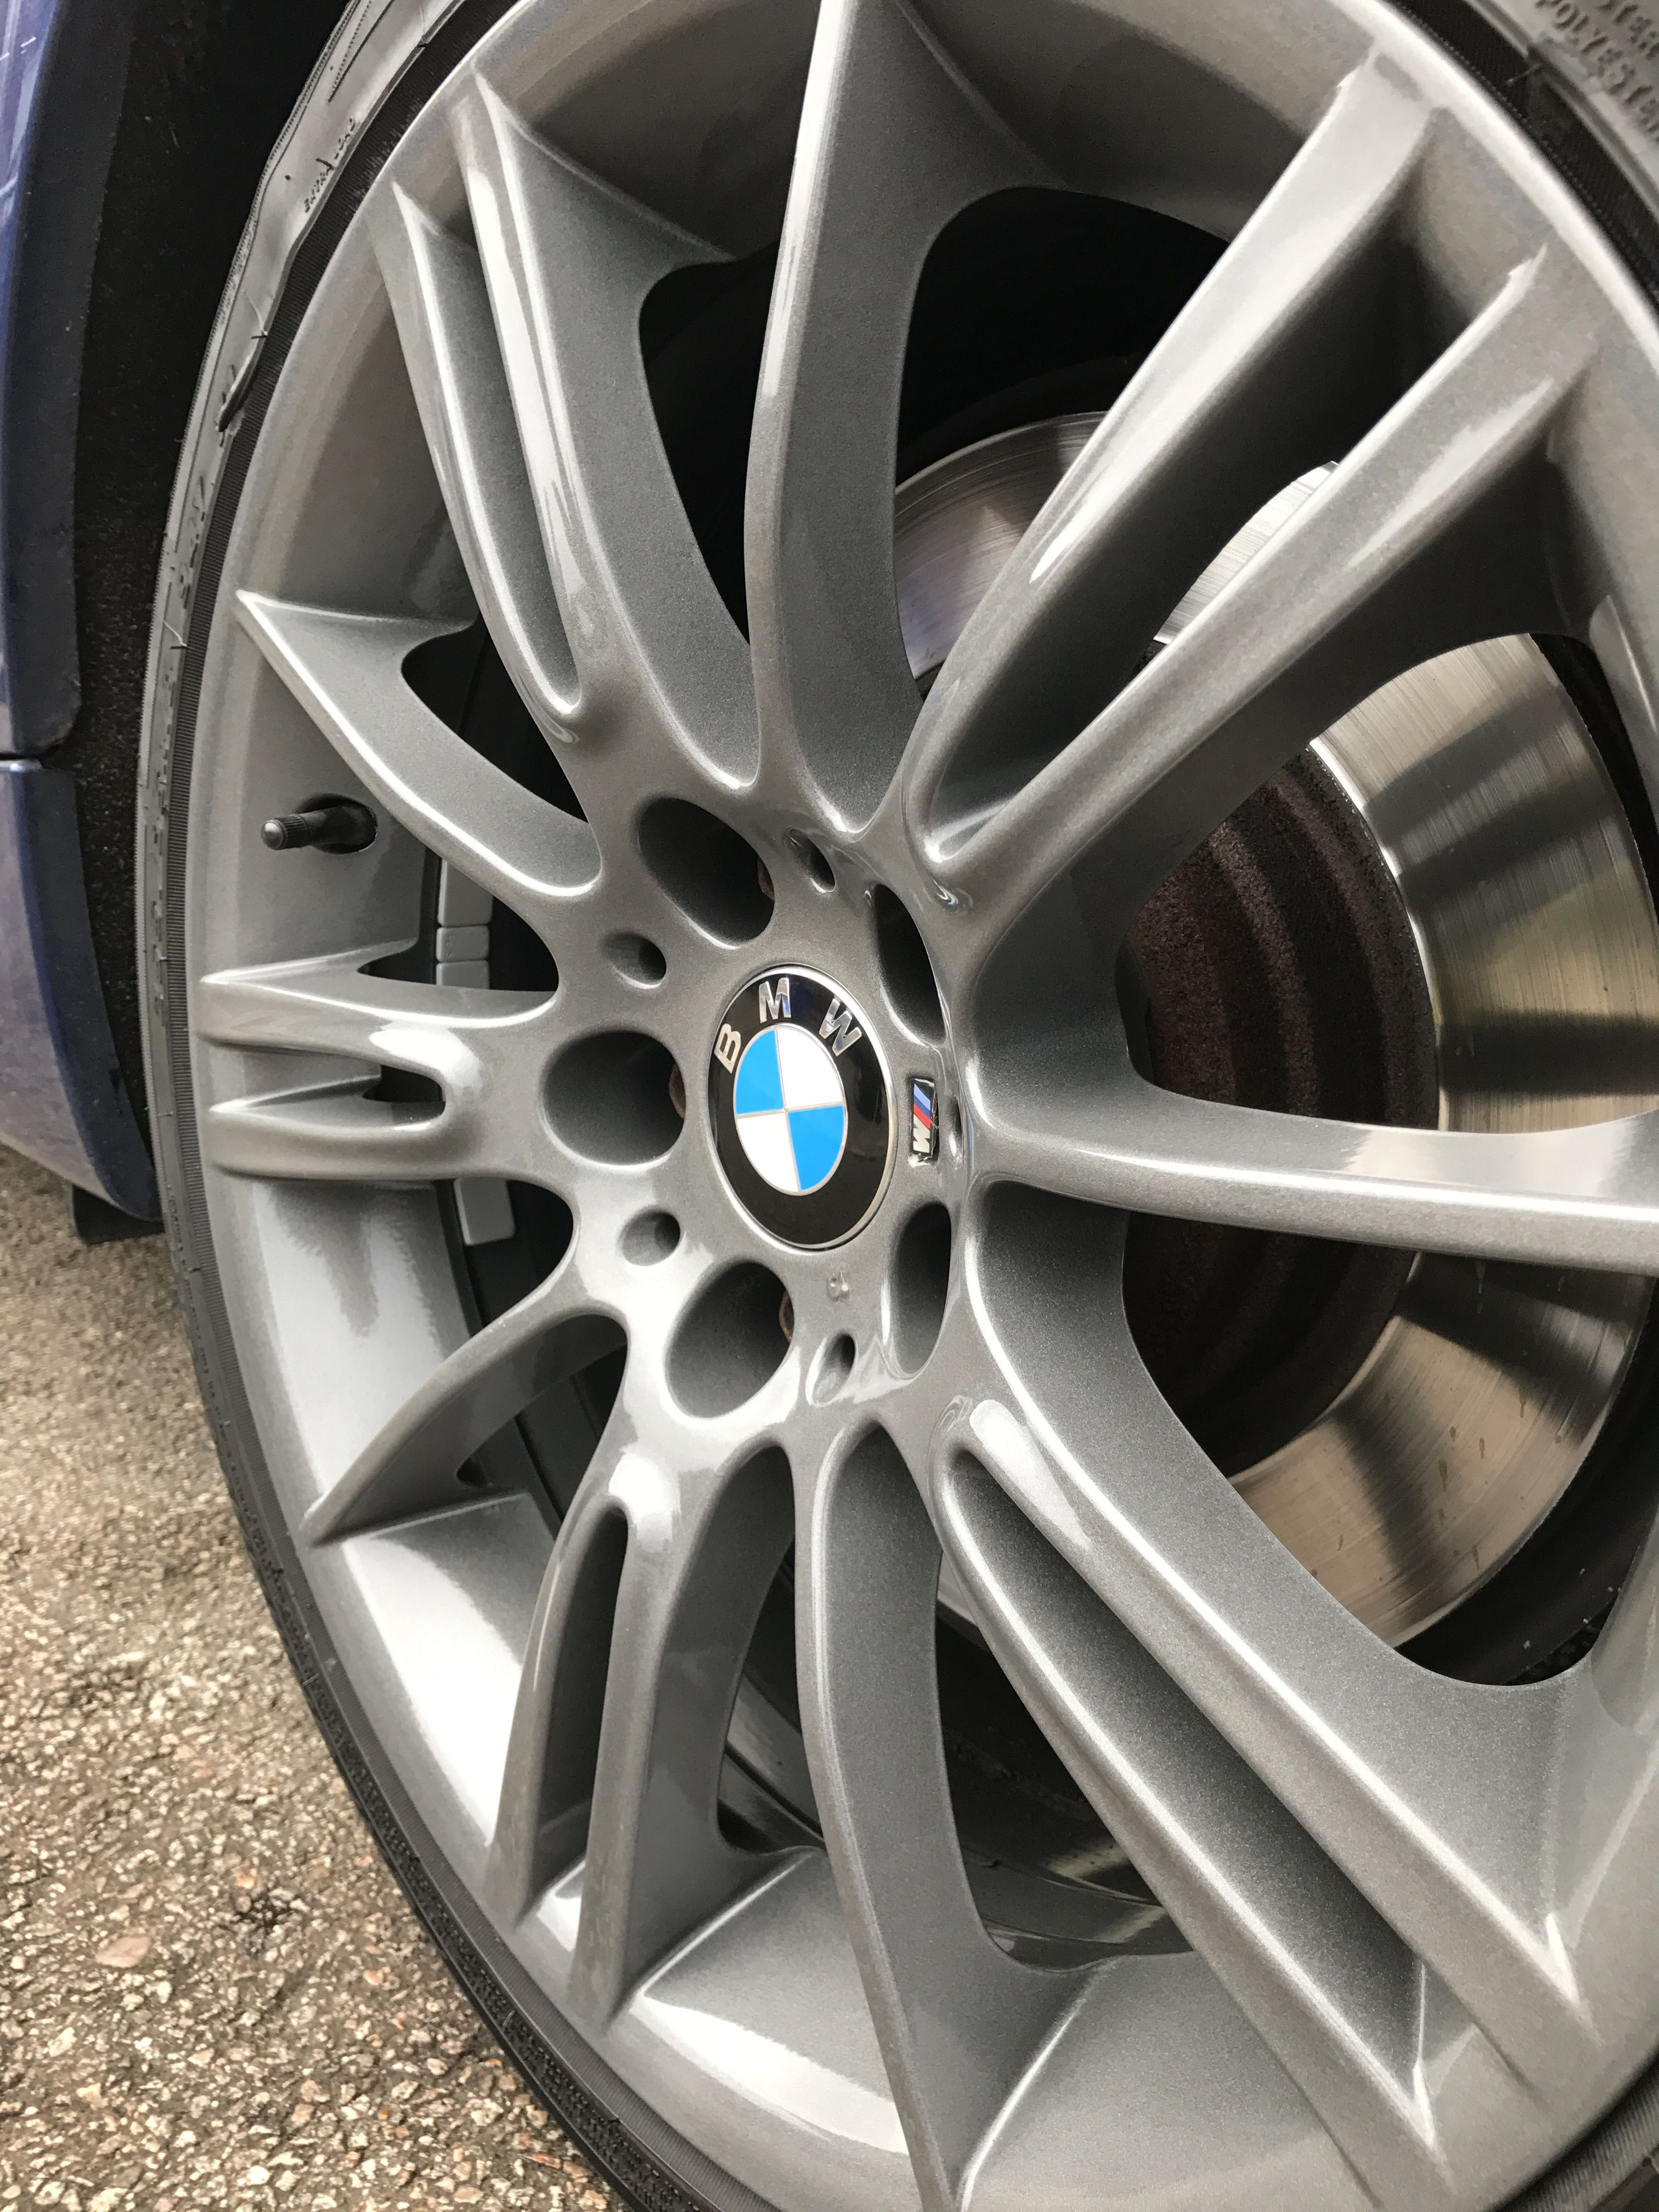 Bmw 330d M Sport Alloys We Refurbished And Powder Coated German